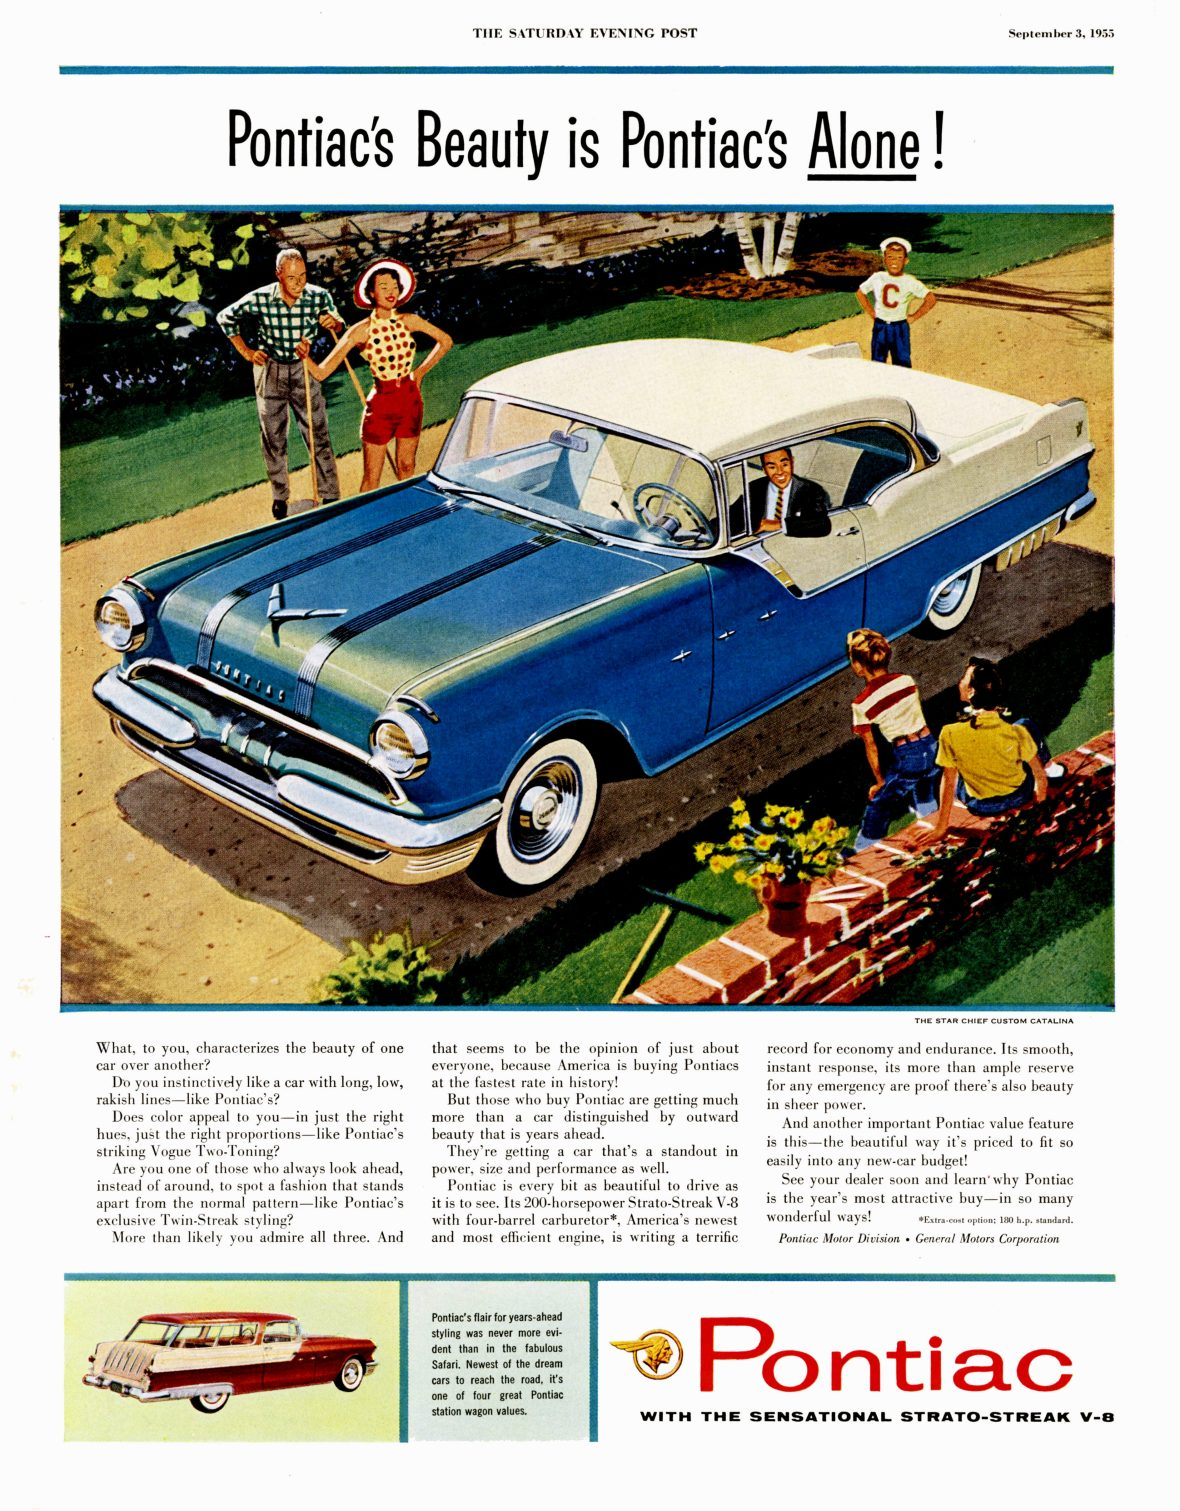 1955 Pontiac Star Chief Custom Catalina - published in The Saturday Evening Post - September 3, 1955